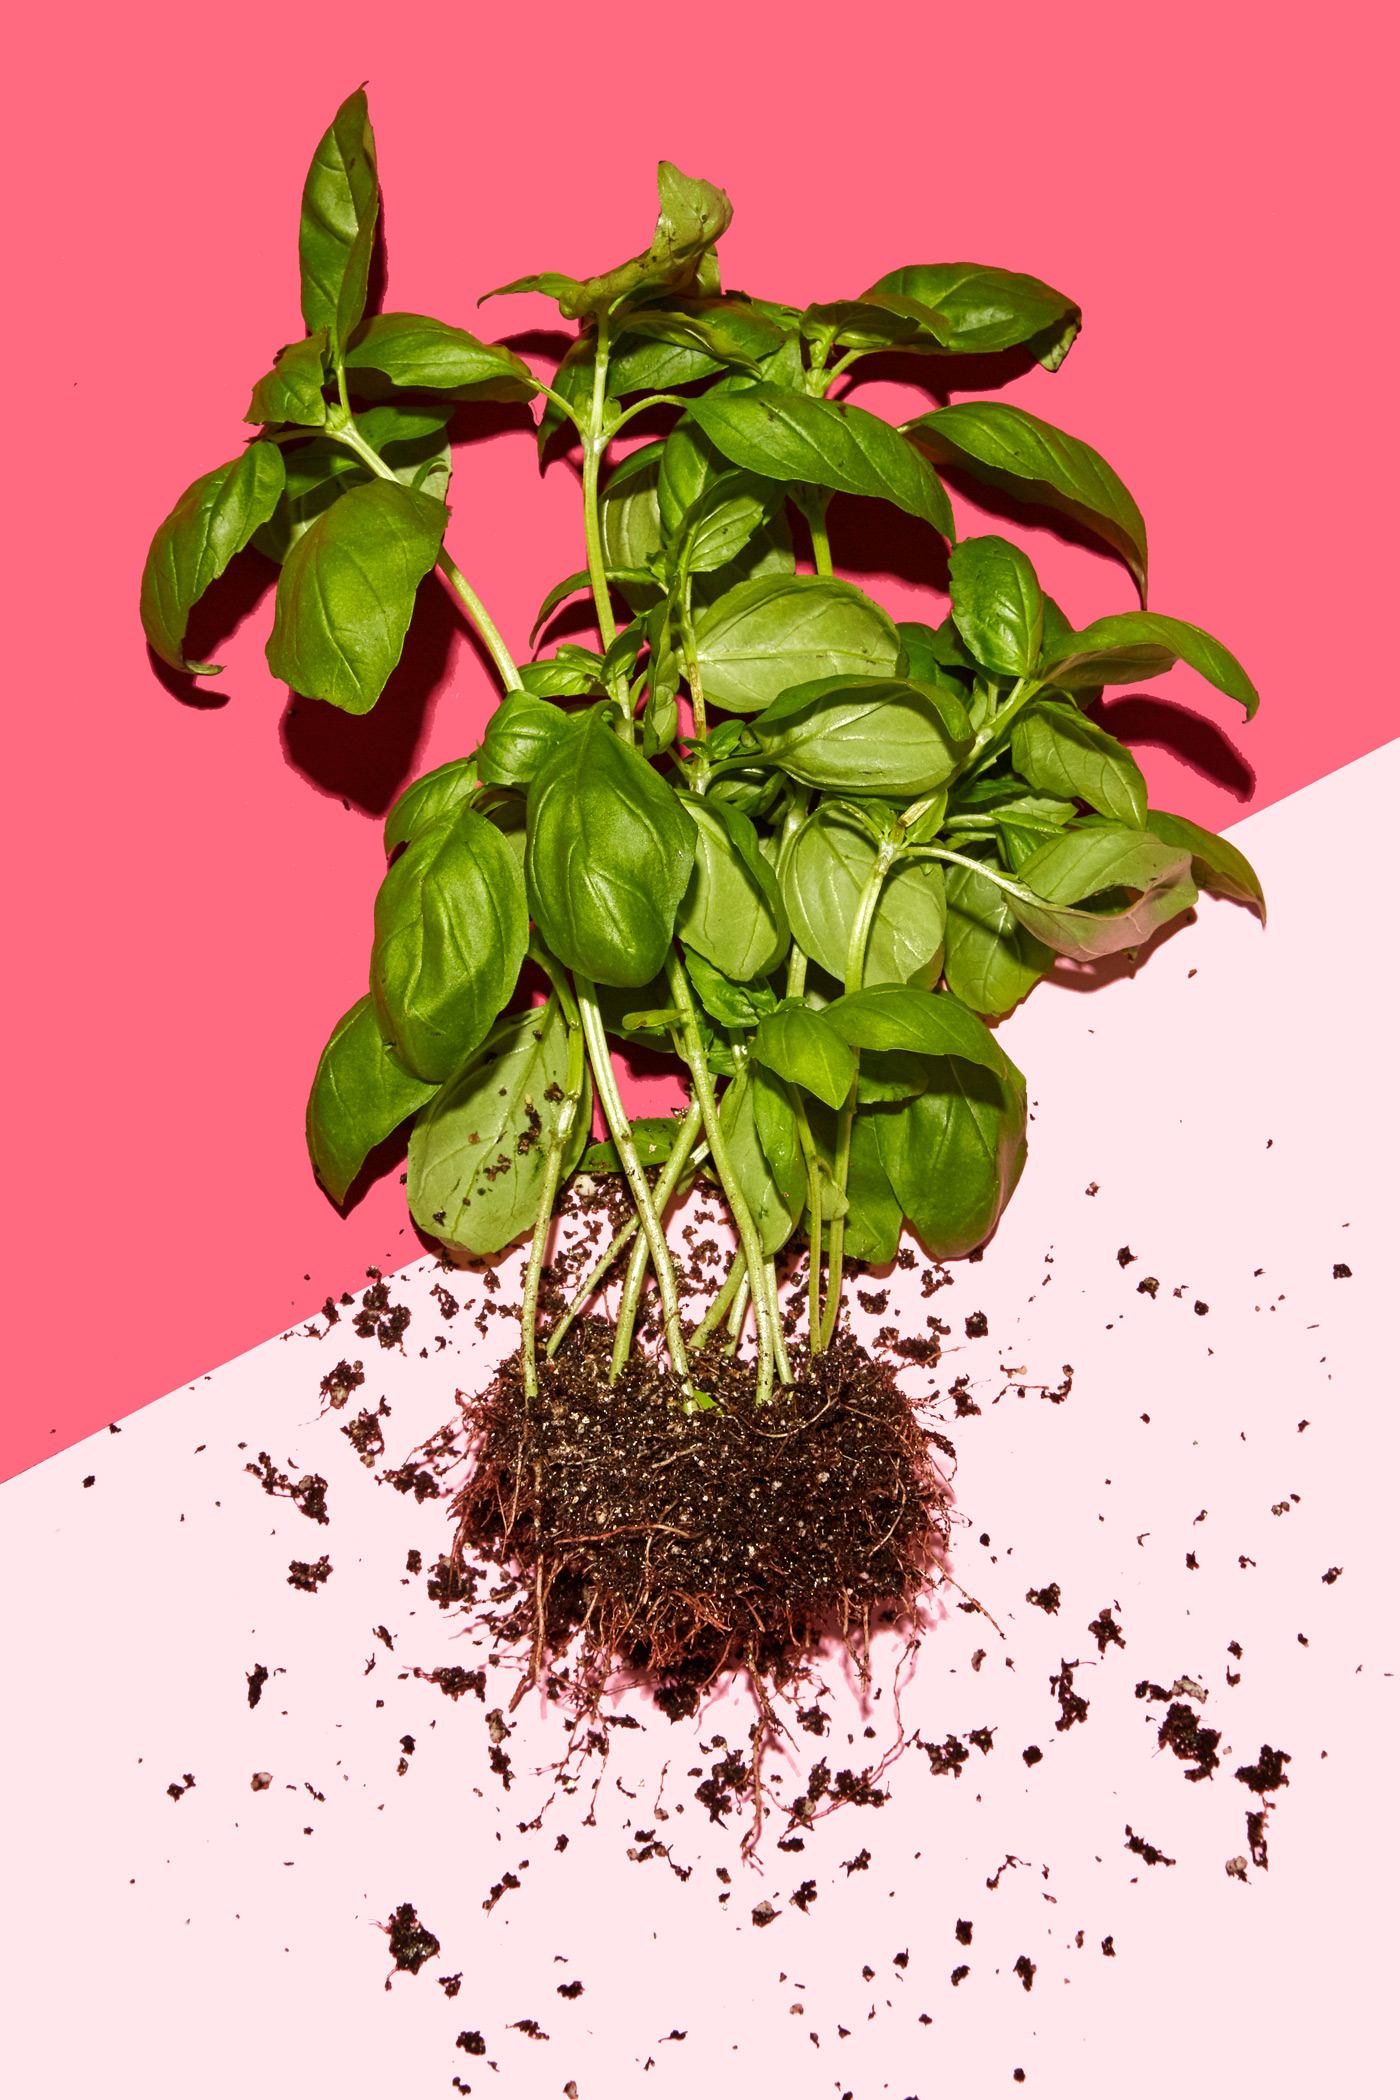 healthiest foods, health food, diet, nutrition, time.com stock, basil, herb